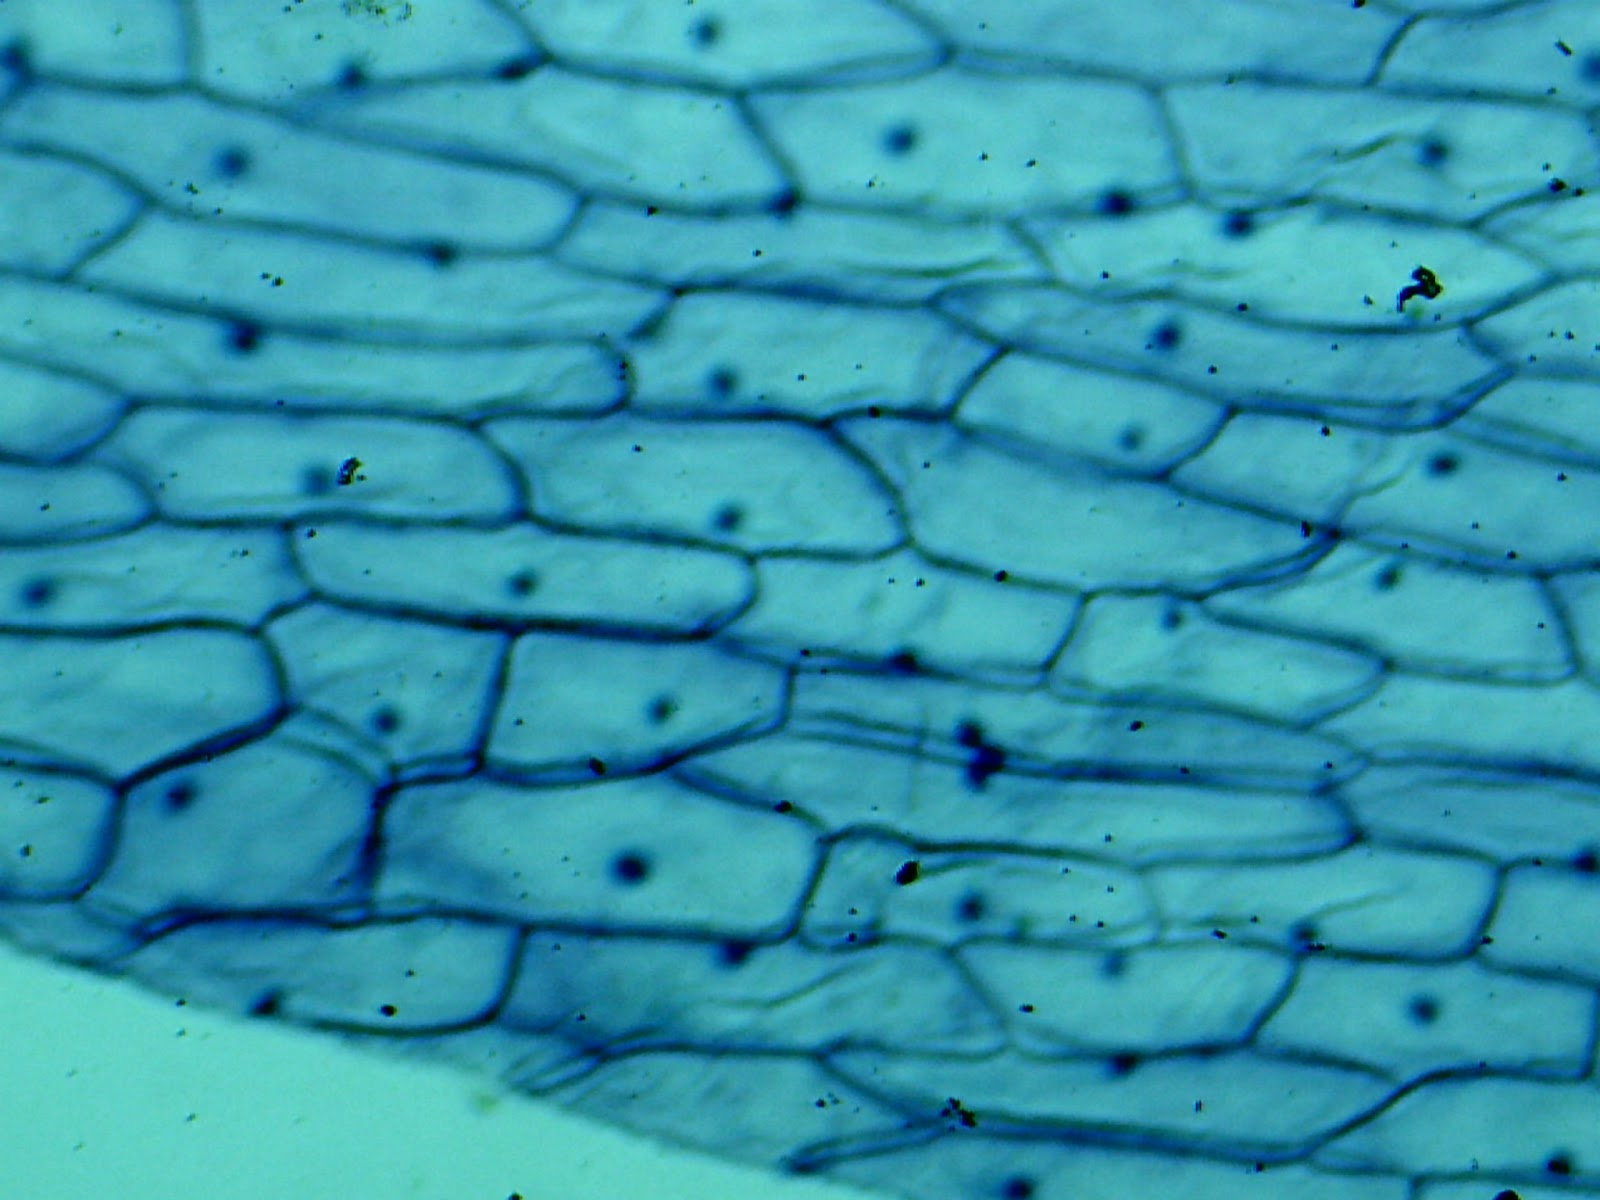 Onion Cell 40x